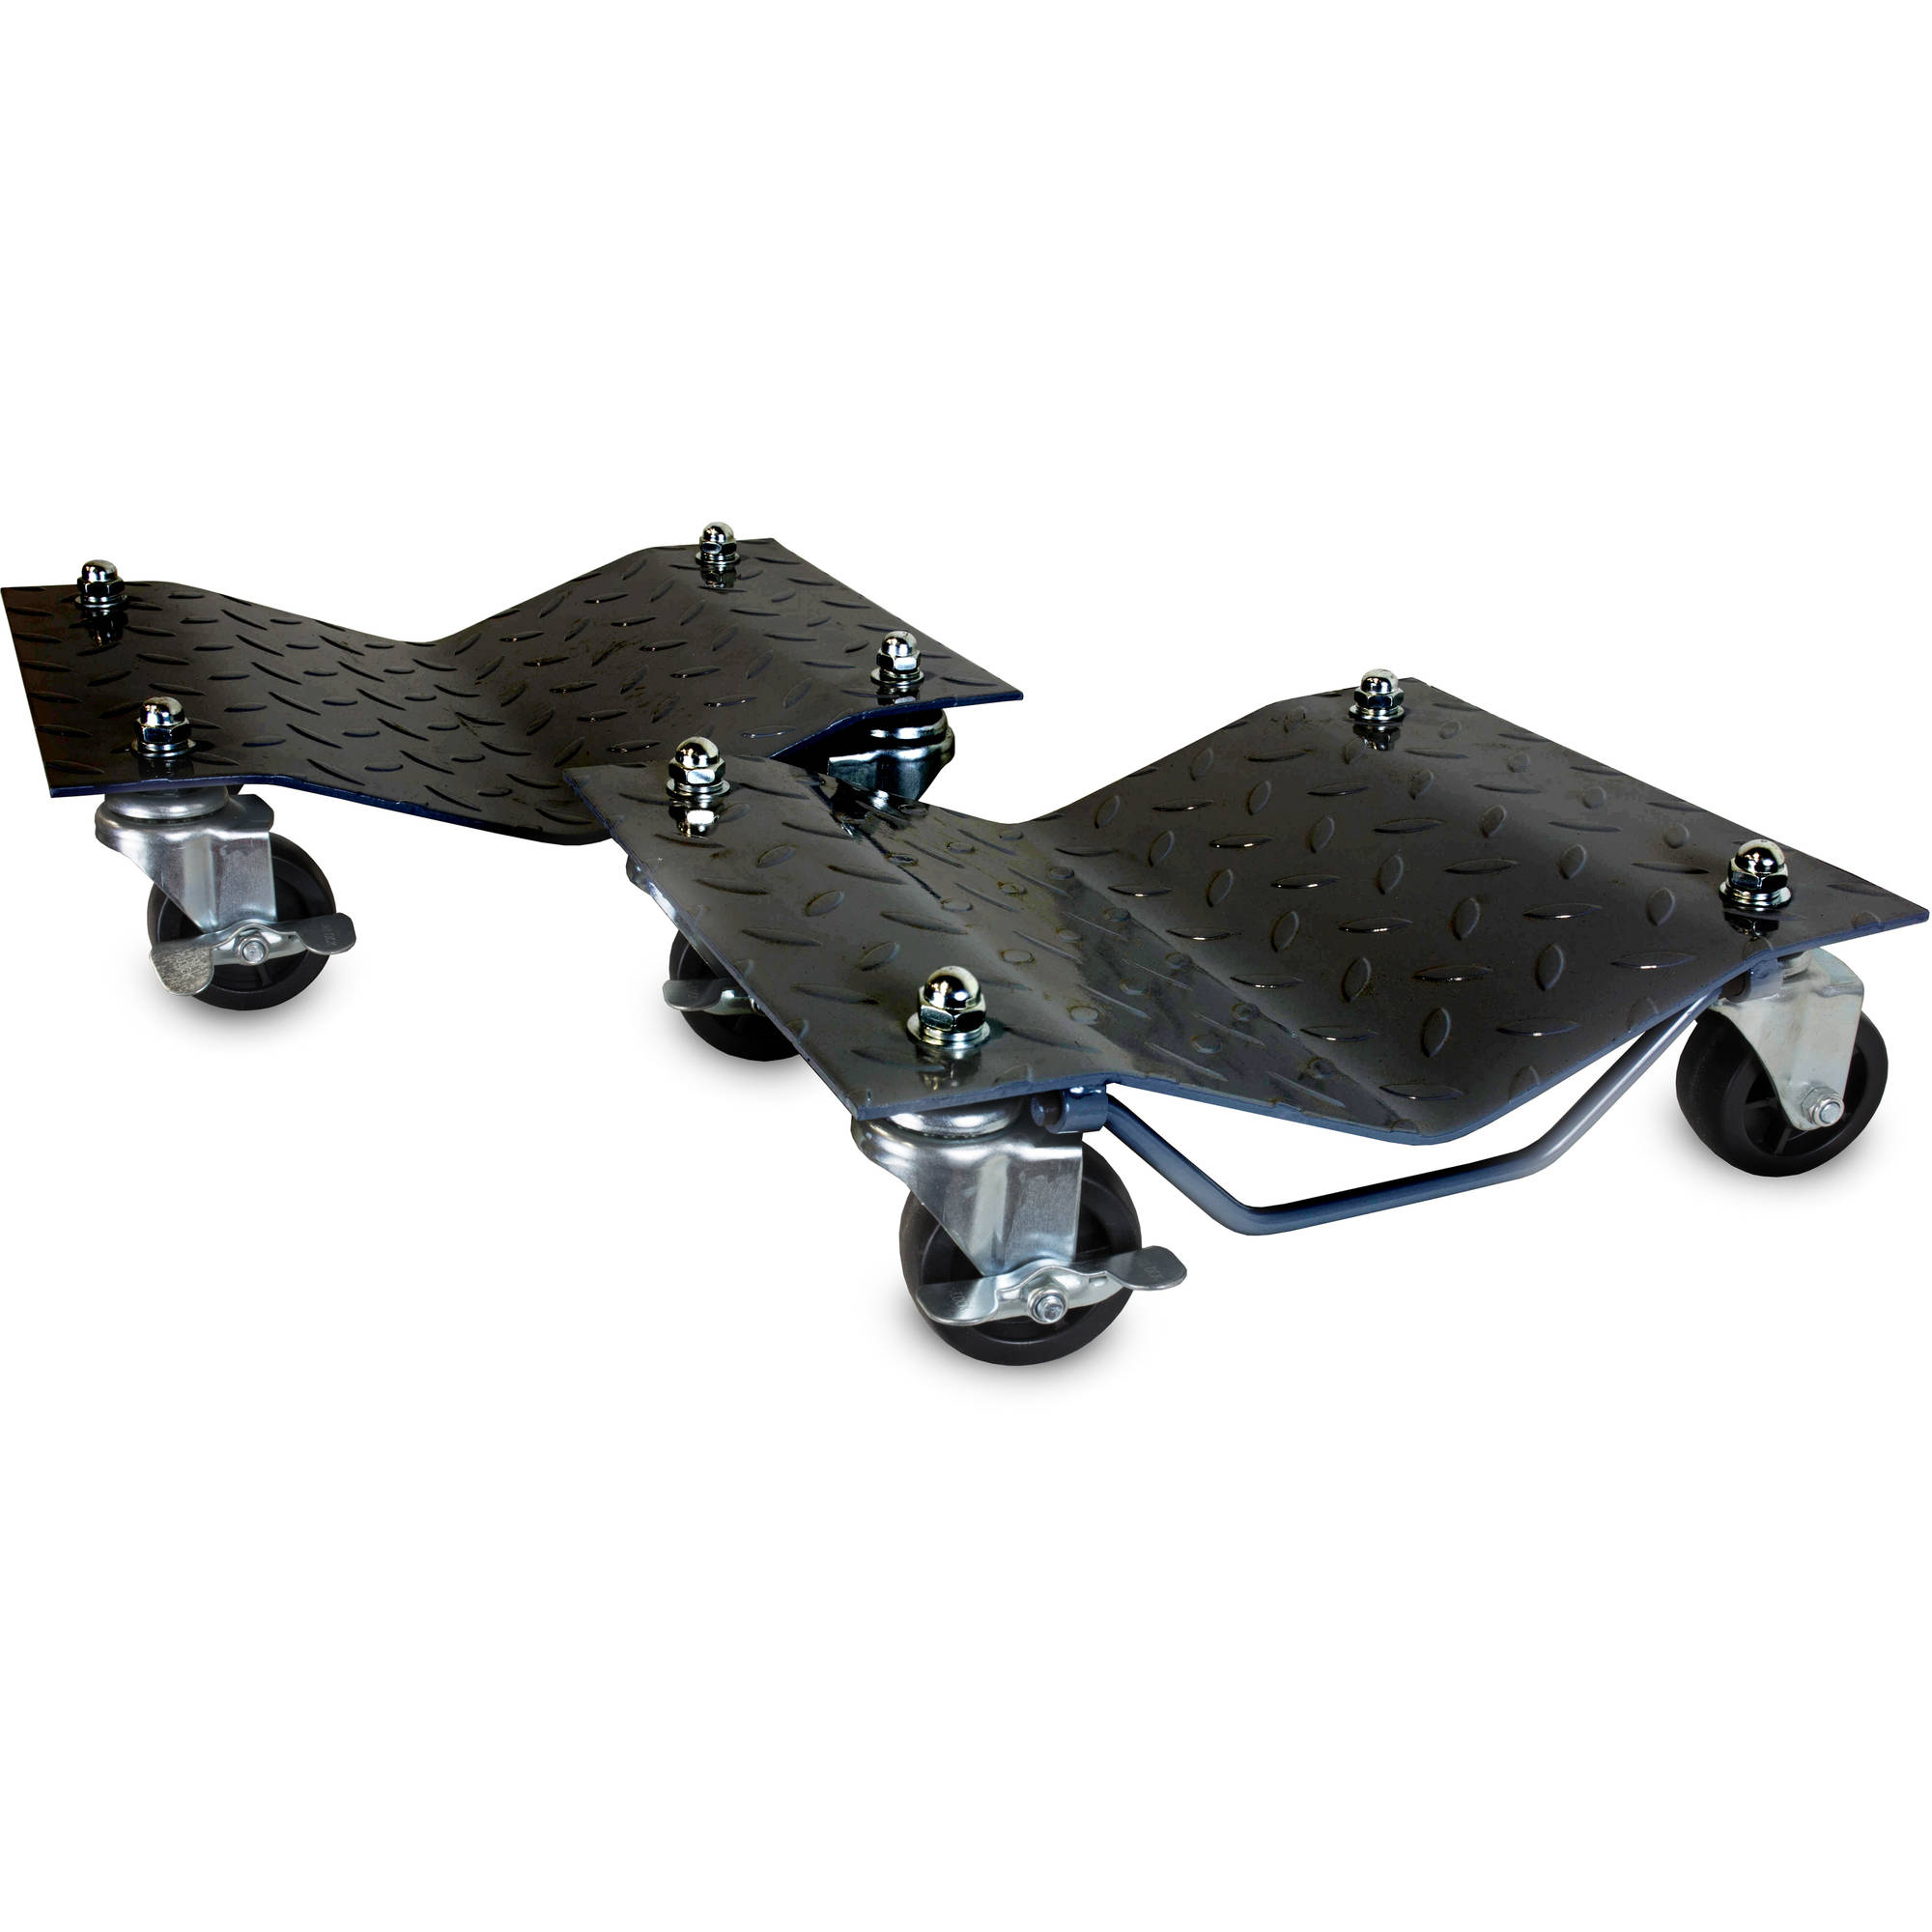 WEN 1500-Pound Capacity Vehicle Dollies, Two Pack